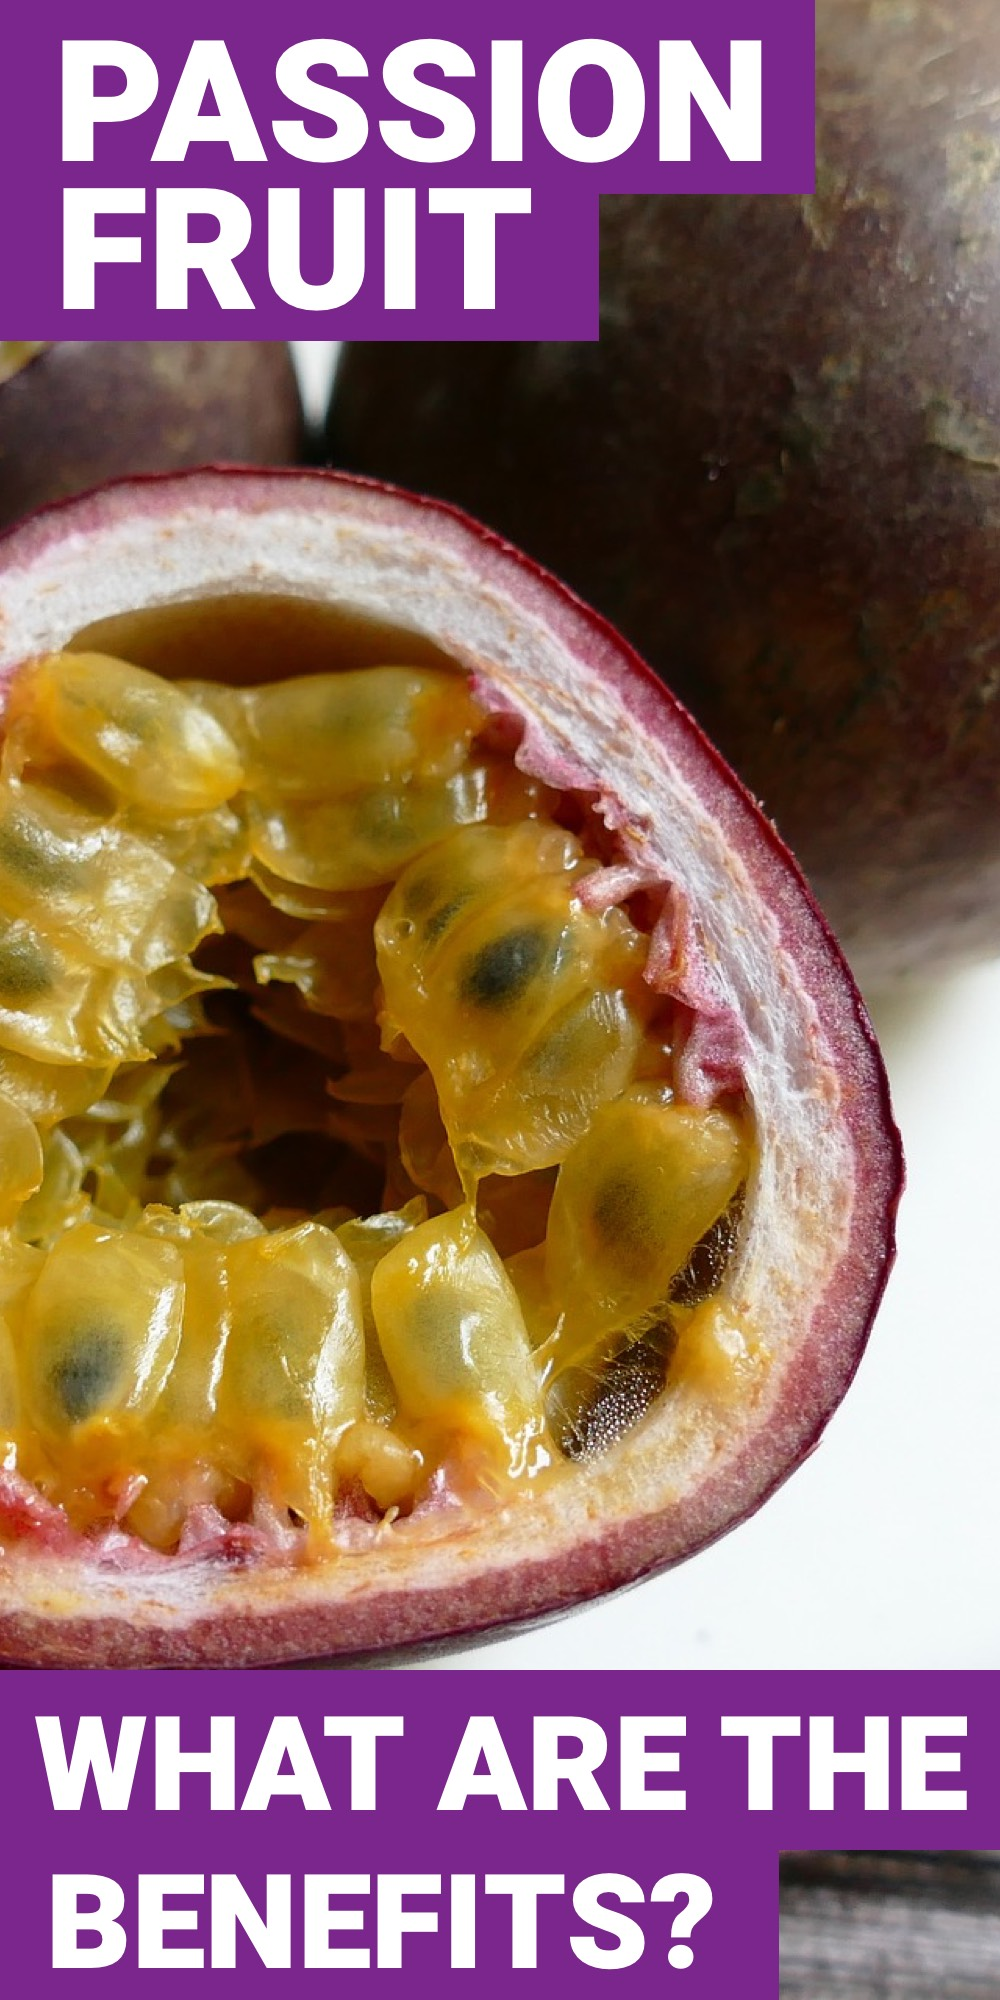 If you have passion fruit, you'll love it. Passion fruit benefits are something that you are going to love to take advantage of.